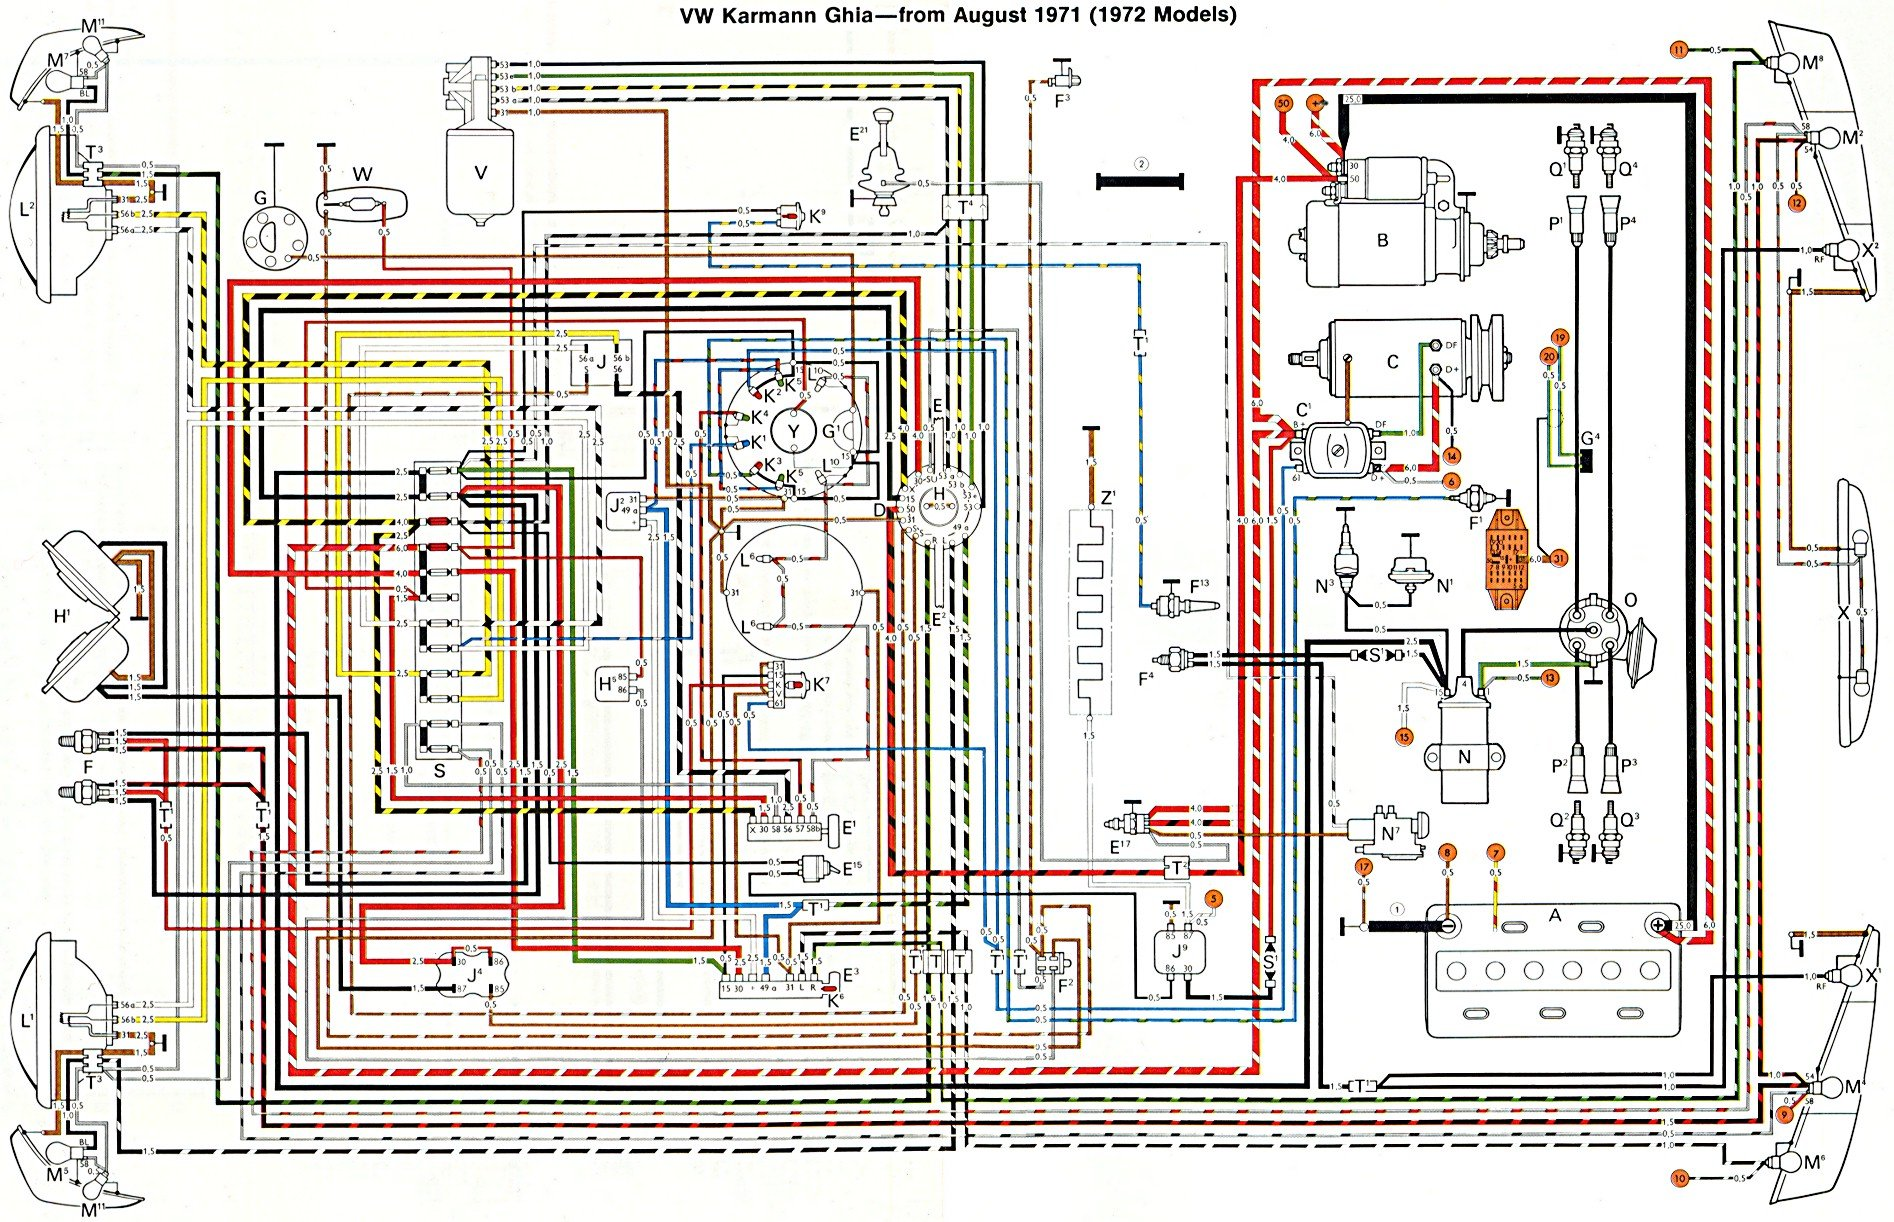 1972 Vw Interior Diagram Wiring Schematic Free For Volkswagen Bug Harness 72 Simple Schema Rh 30 Aspire Atlantis De Bus Ignition